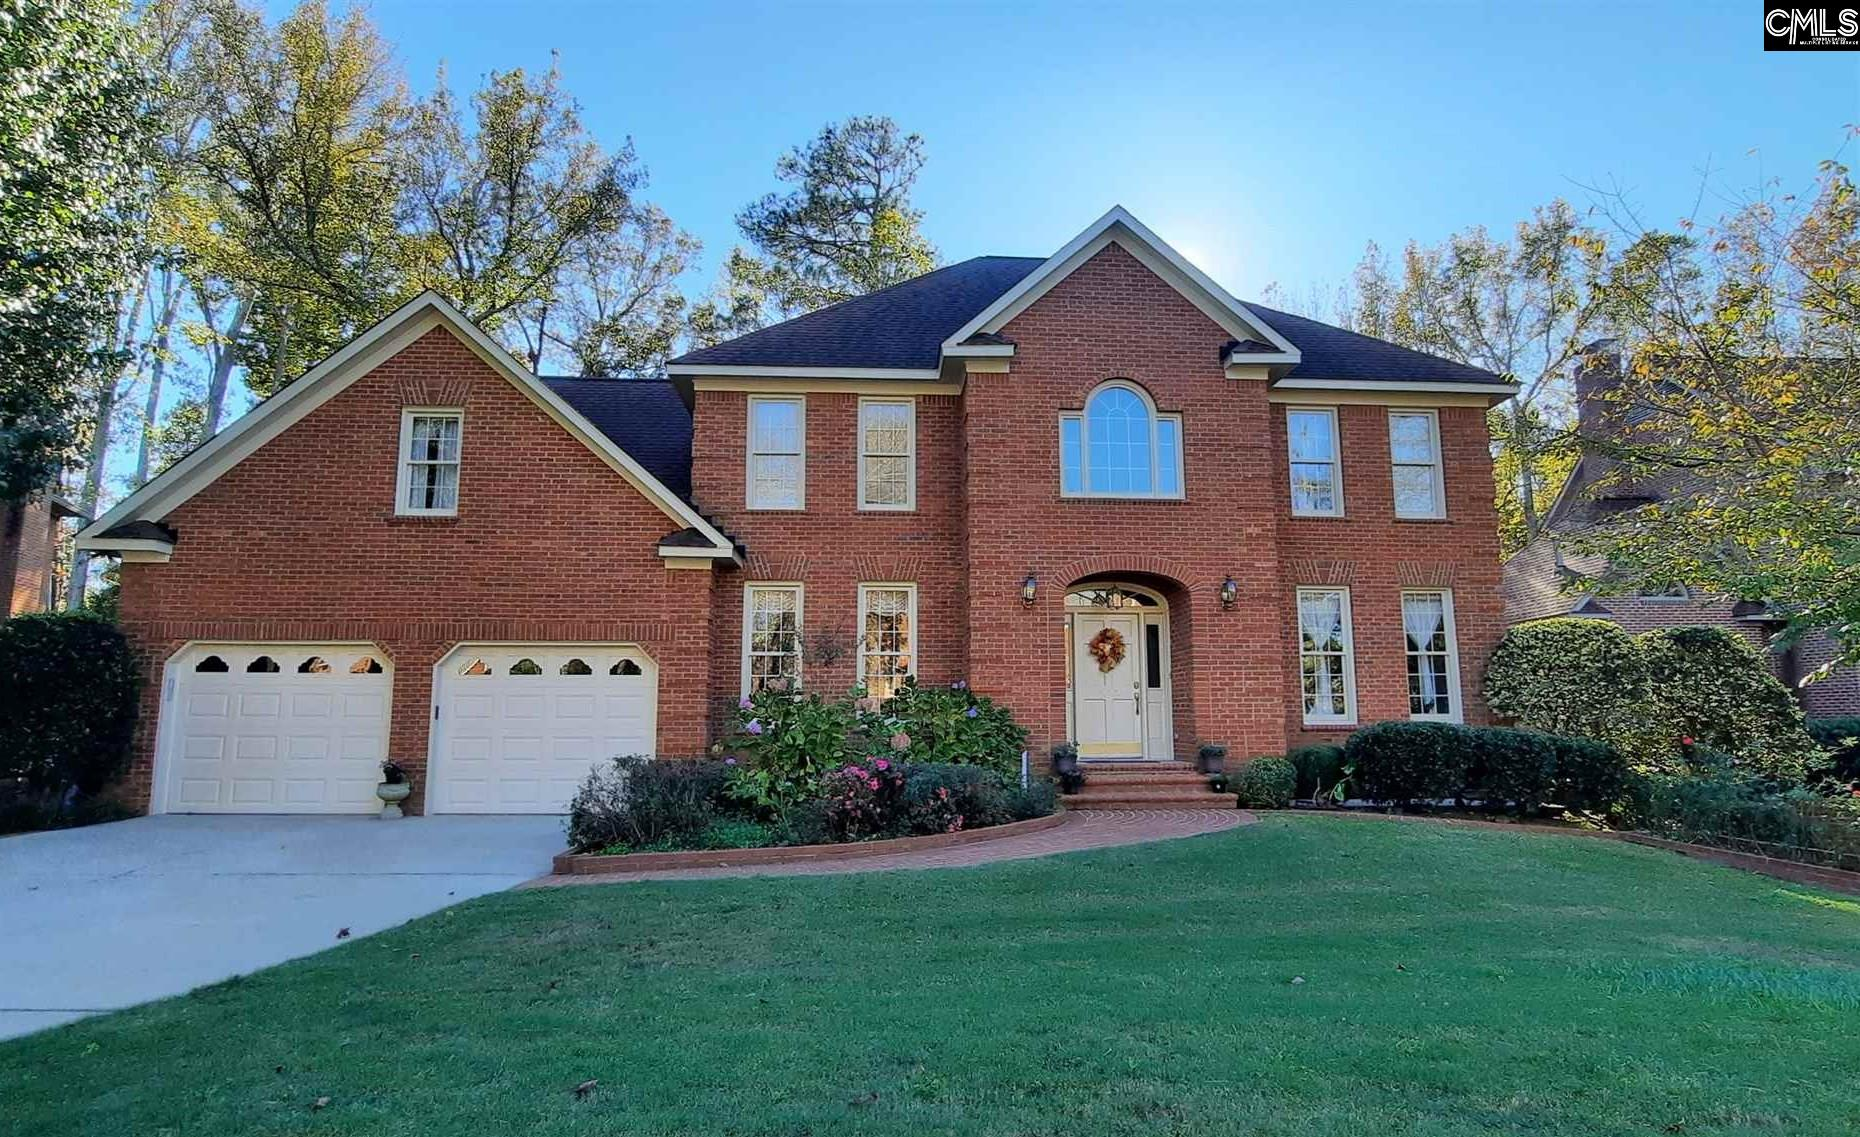 514 Clearview Columbia, SC 29212-8311